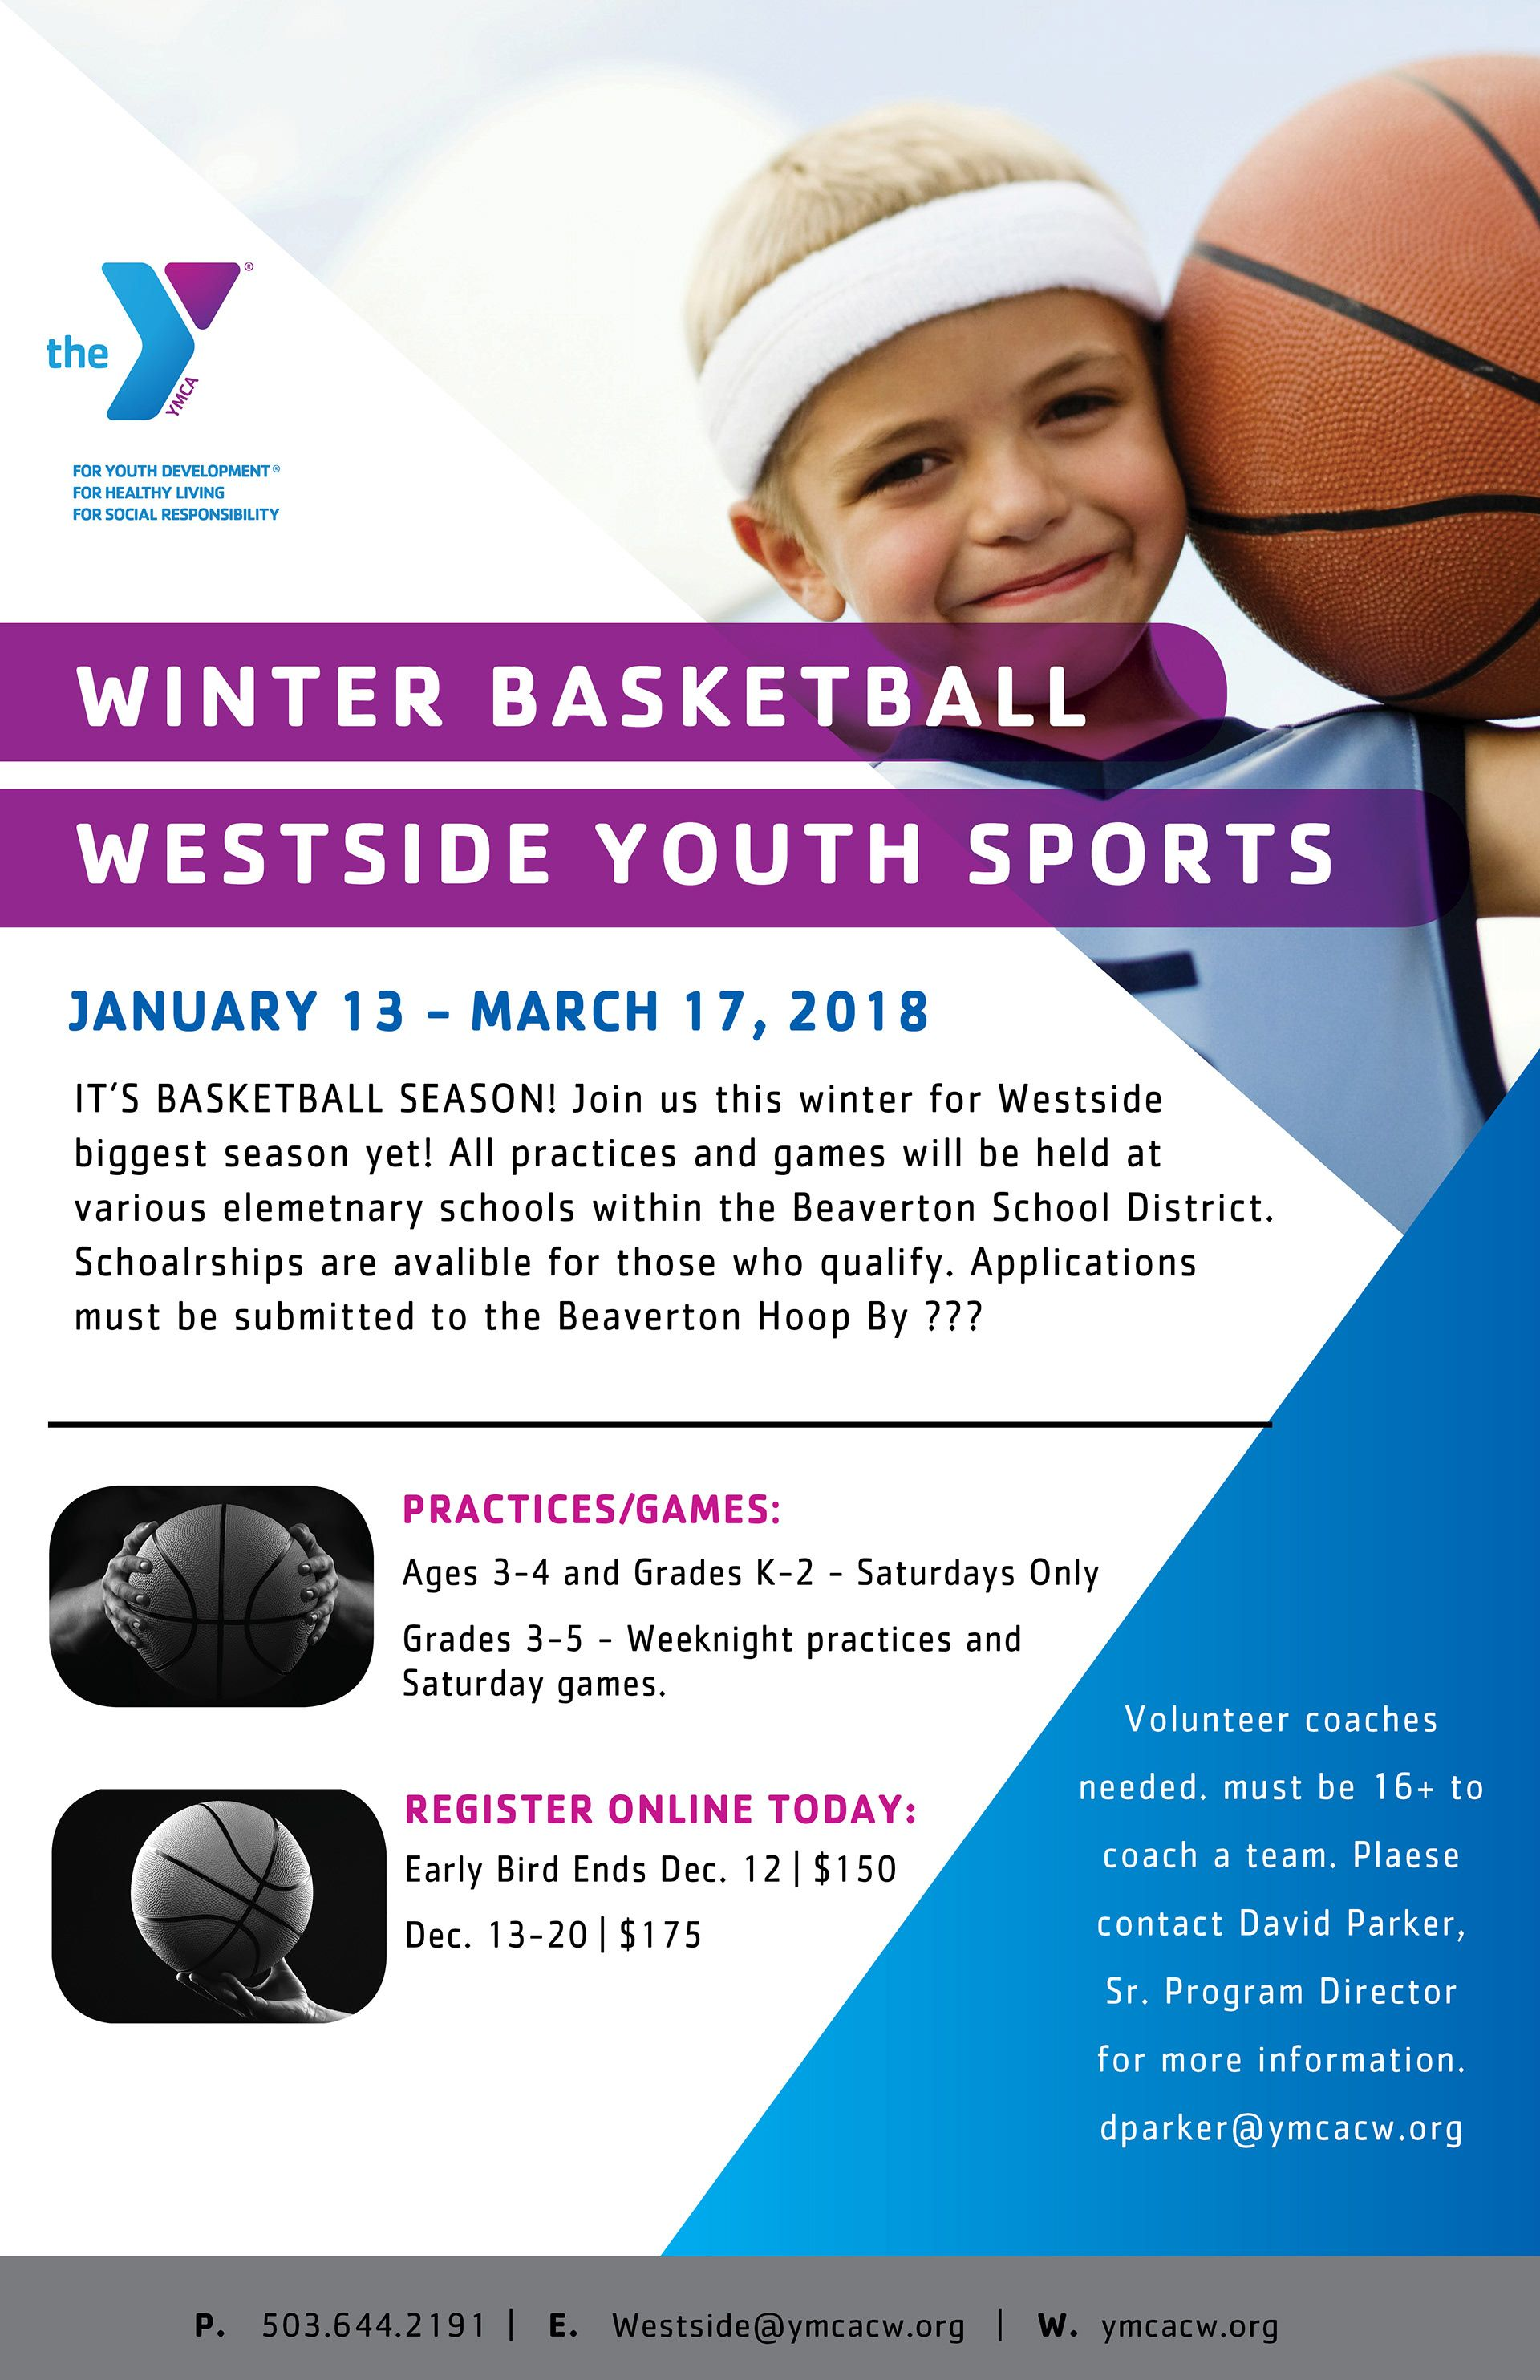 Ymca Of Columbia Willamette Poster Design Westside Youth Sports Department Basketball Leauge Ymca Youth Programs Marketing Poster